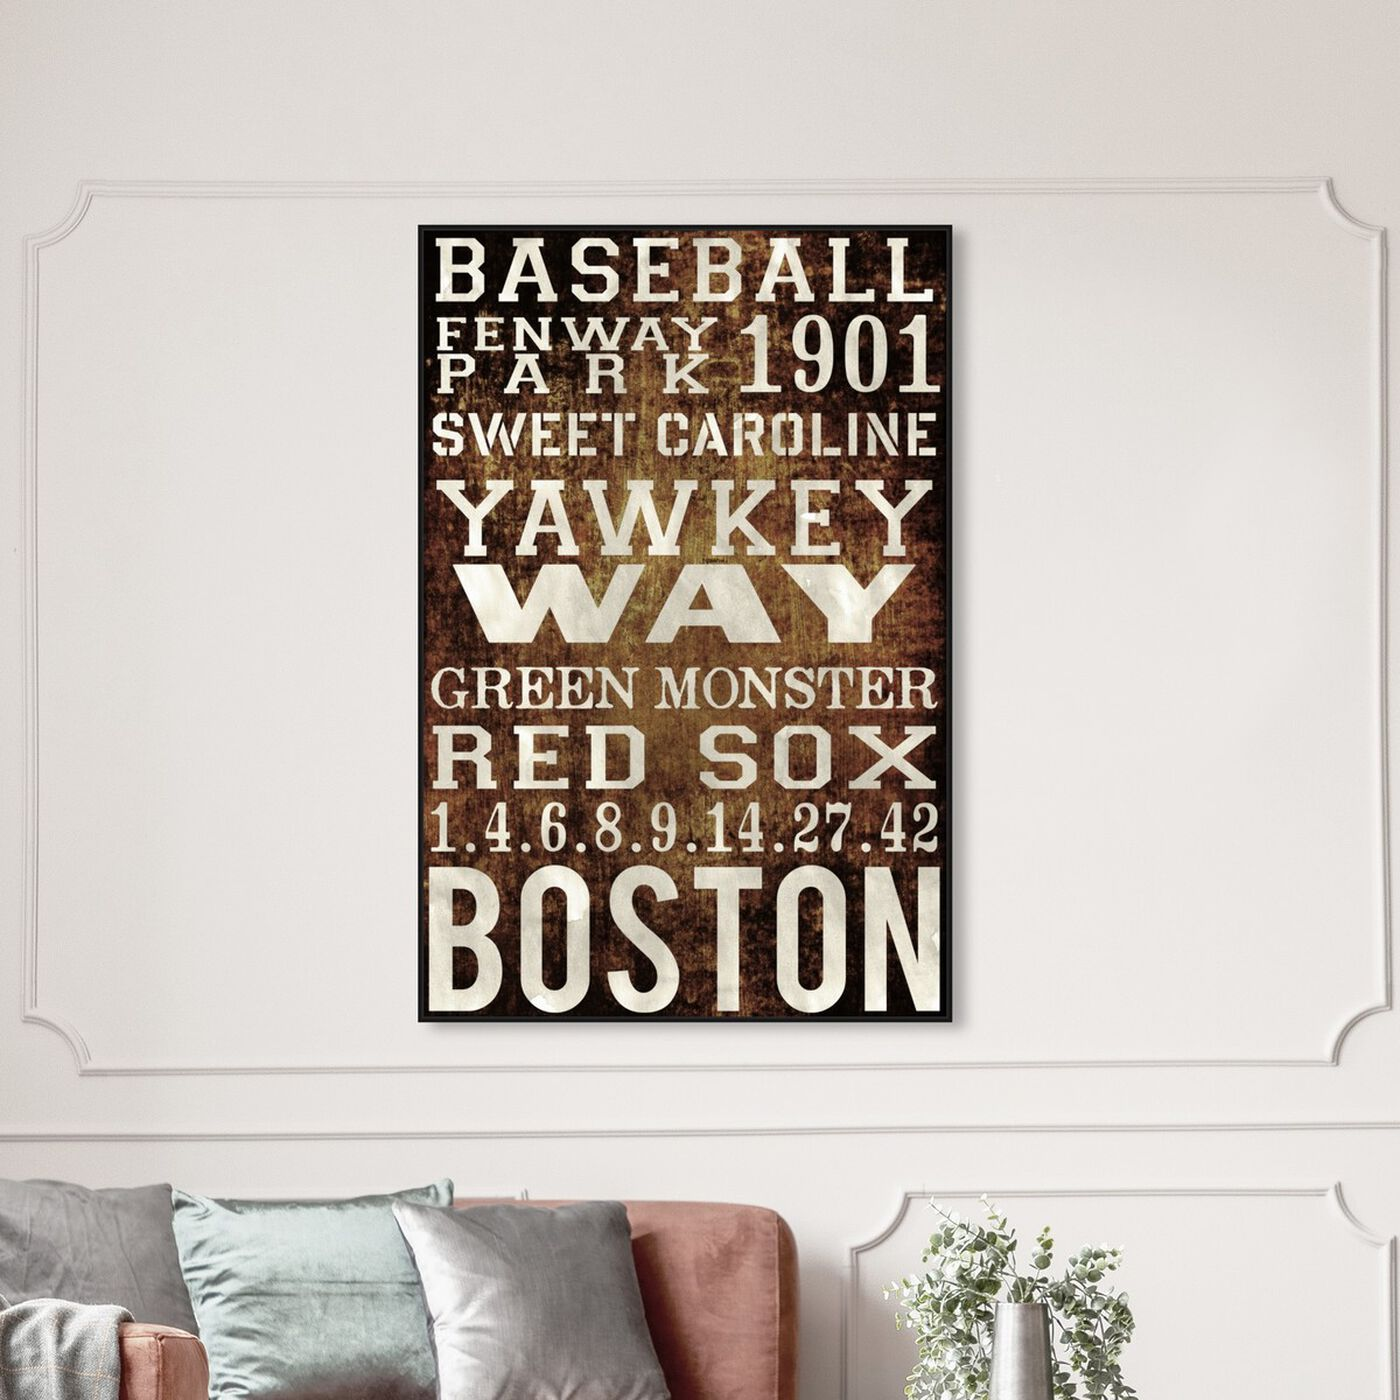 Hanging view of Boston Red Sox featuring advertising and publications art.